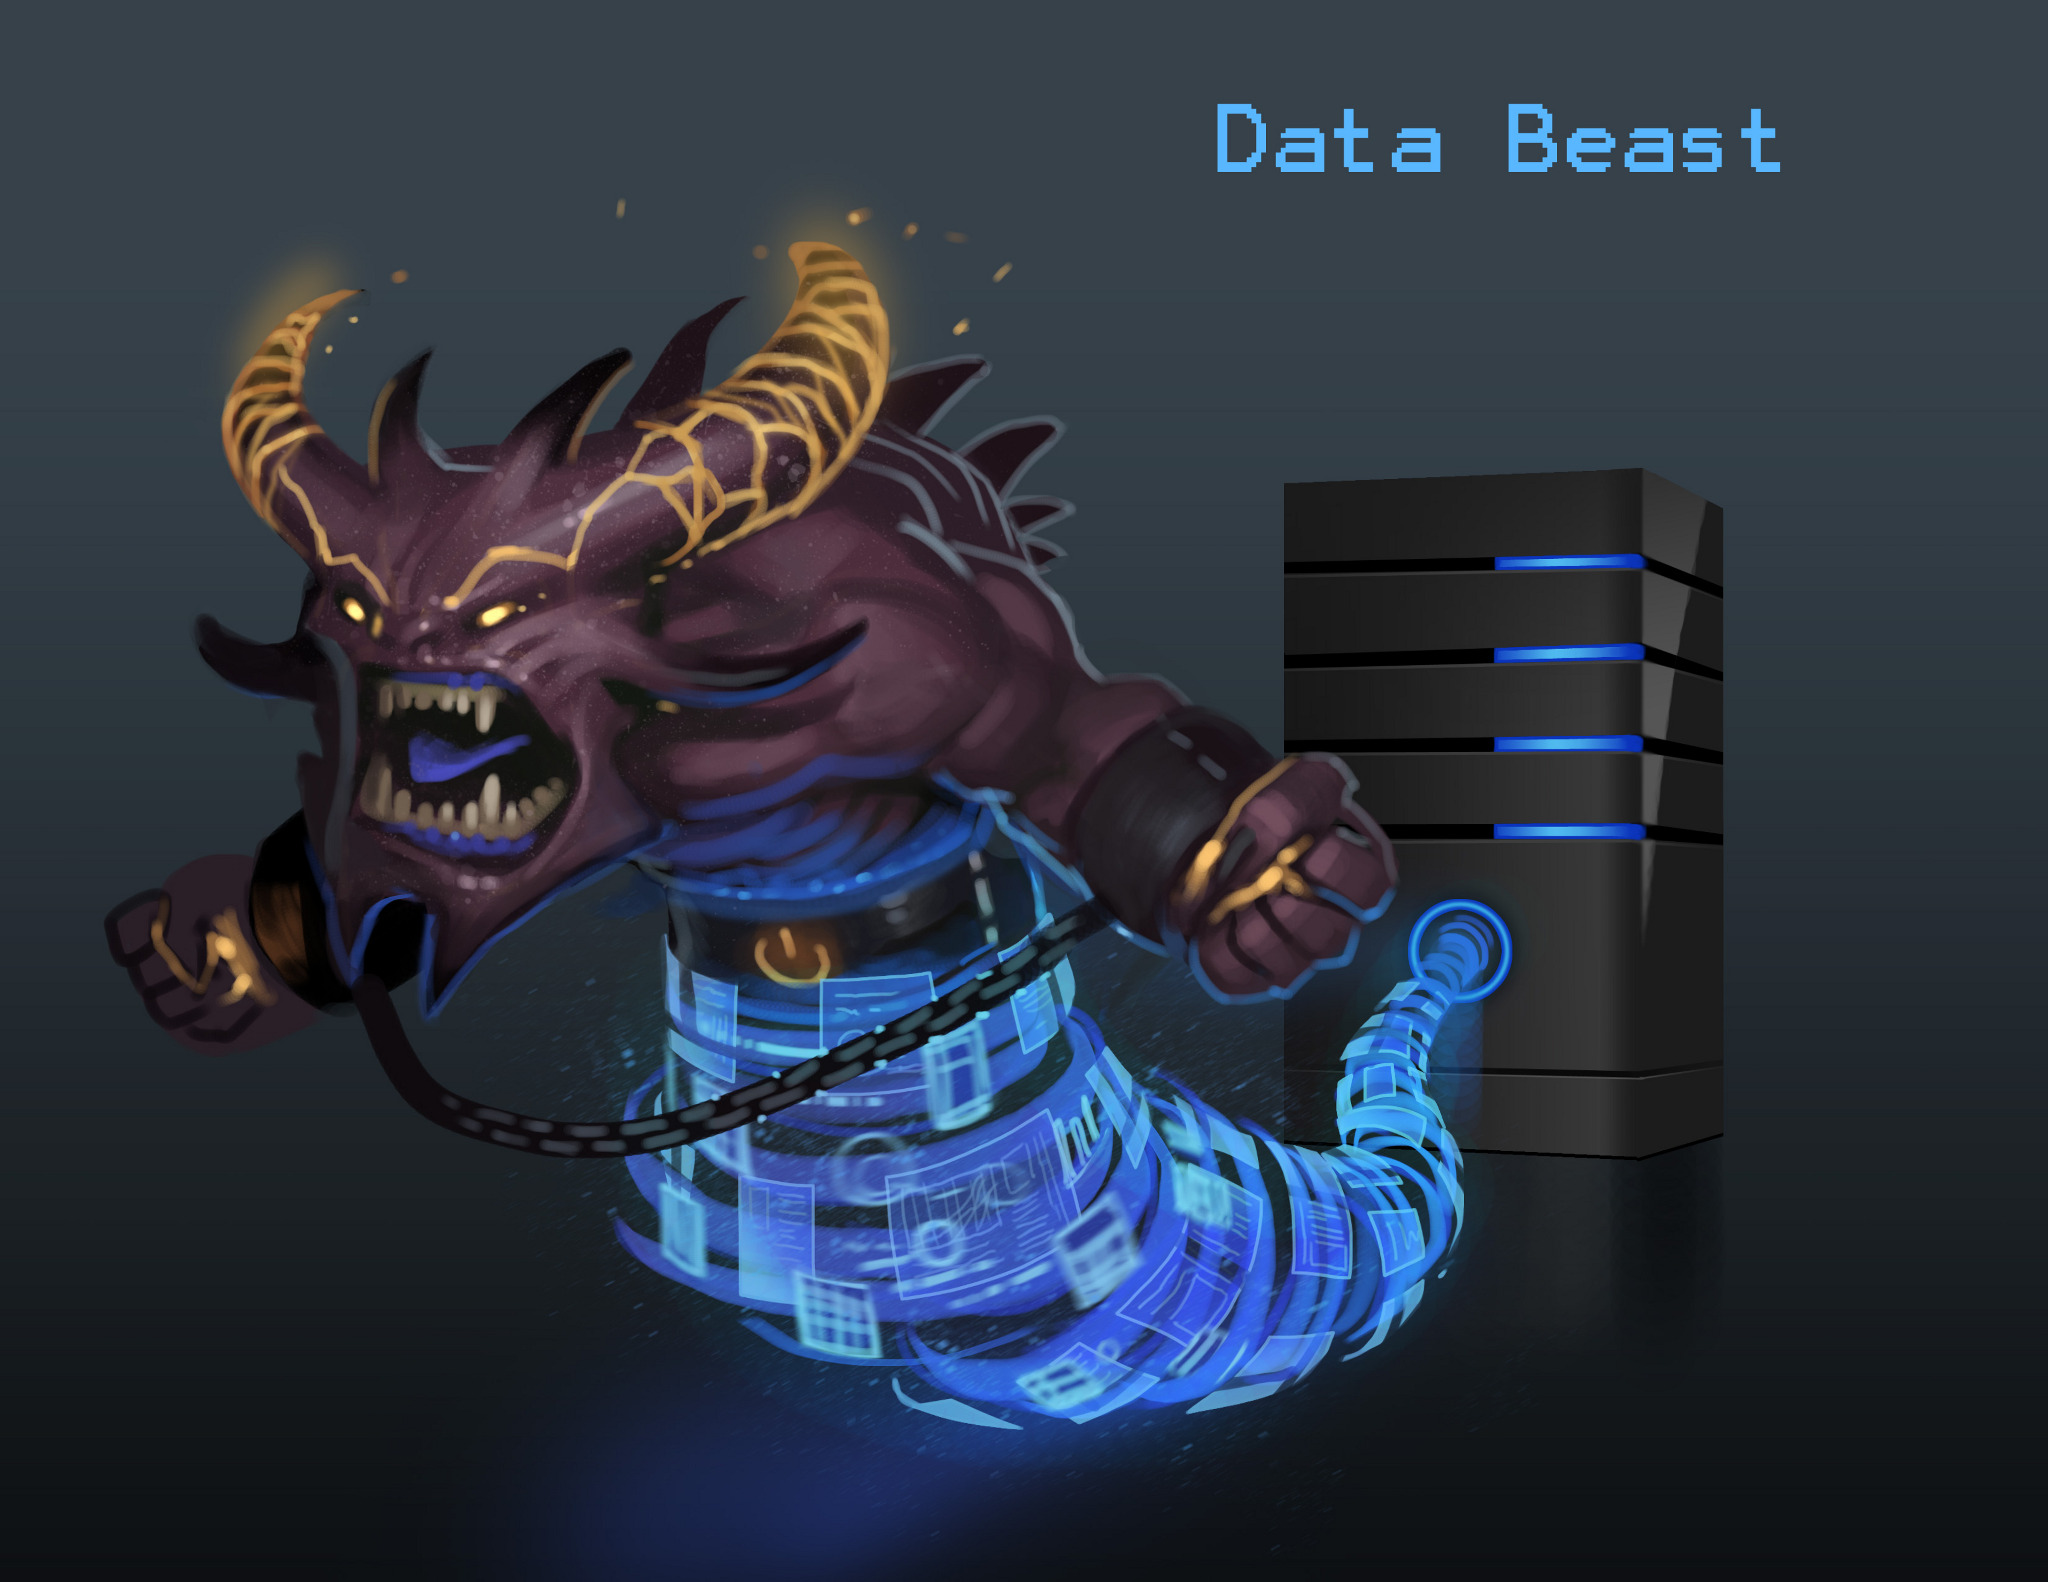 Harris-Broadcast-Invenio-Data-Beast-3.jpg